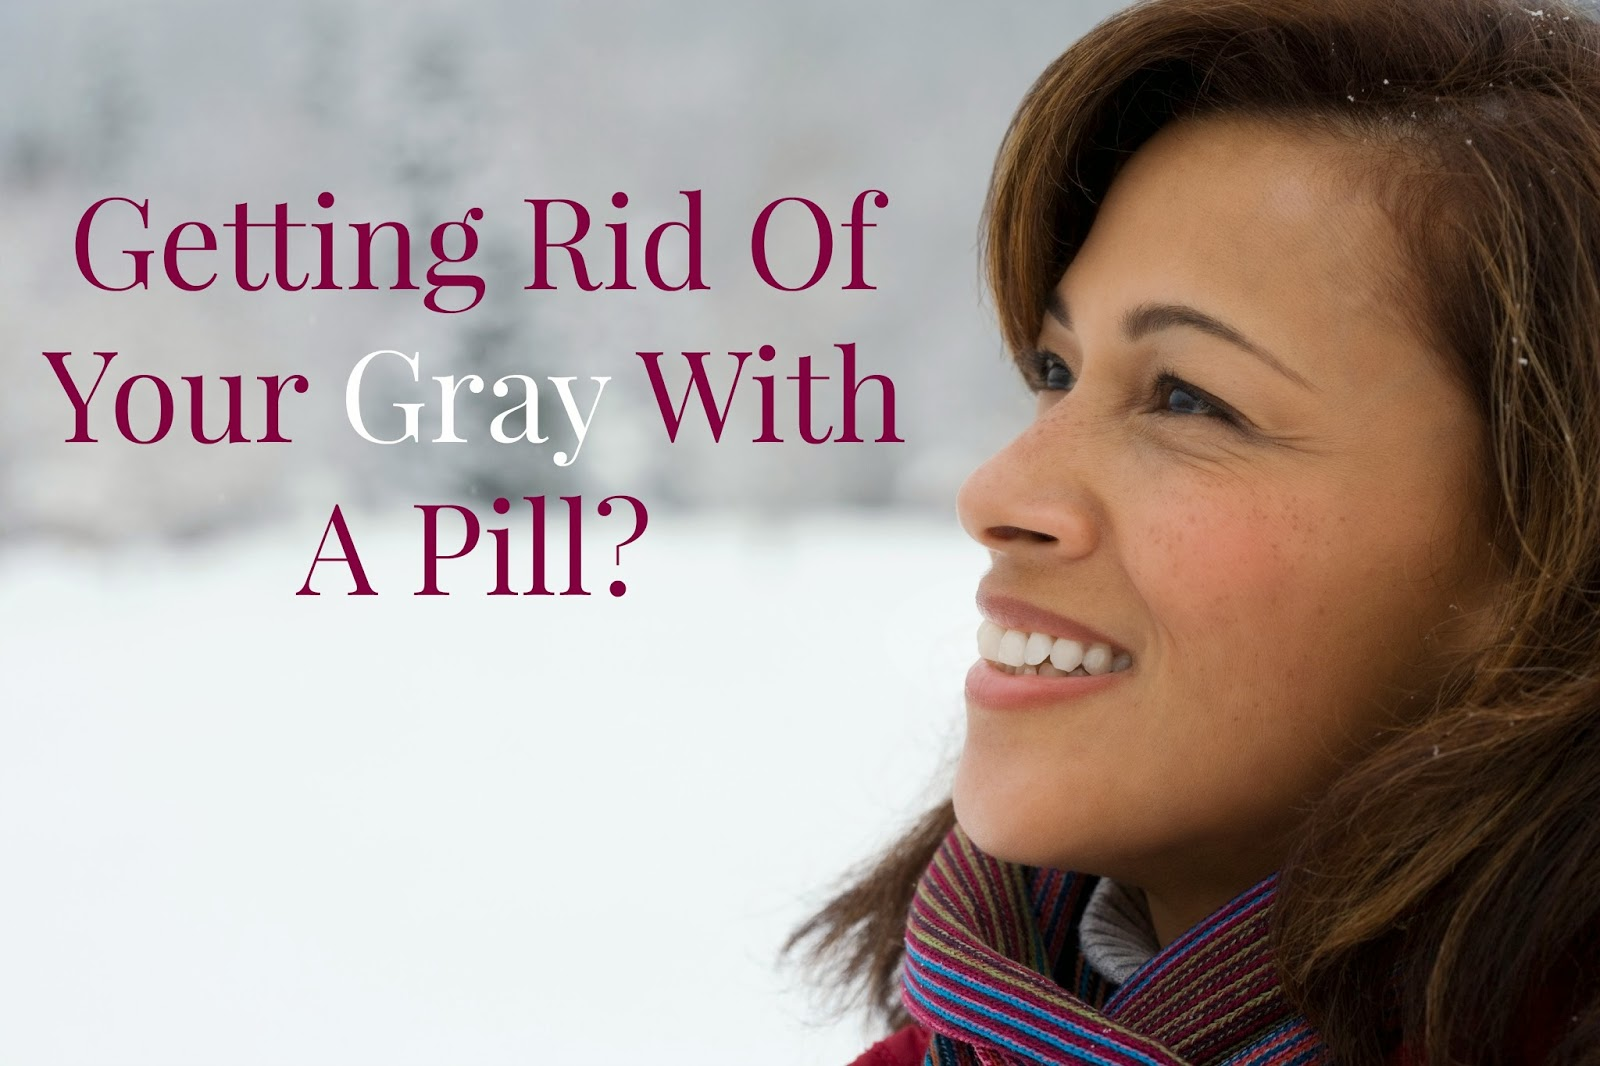 Getting rid of your gray with a pill?